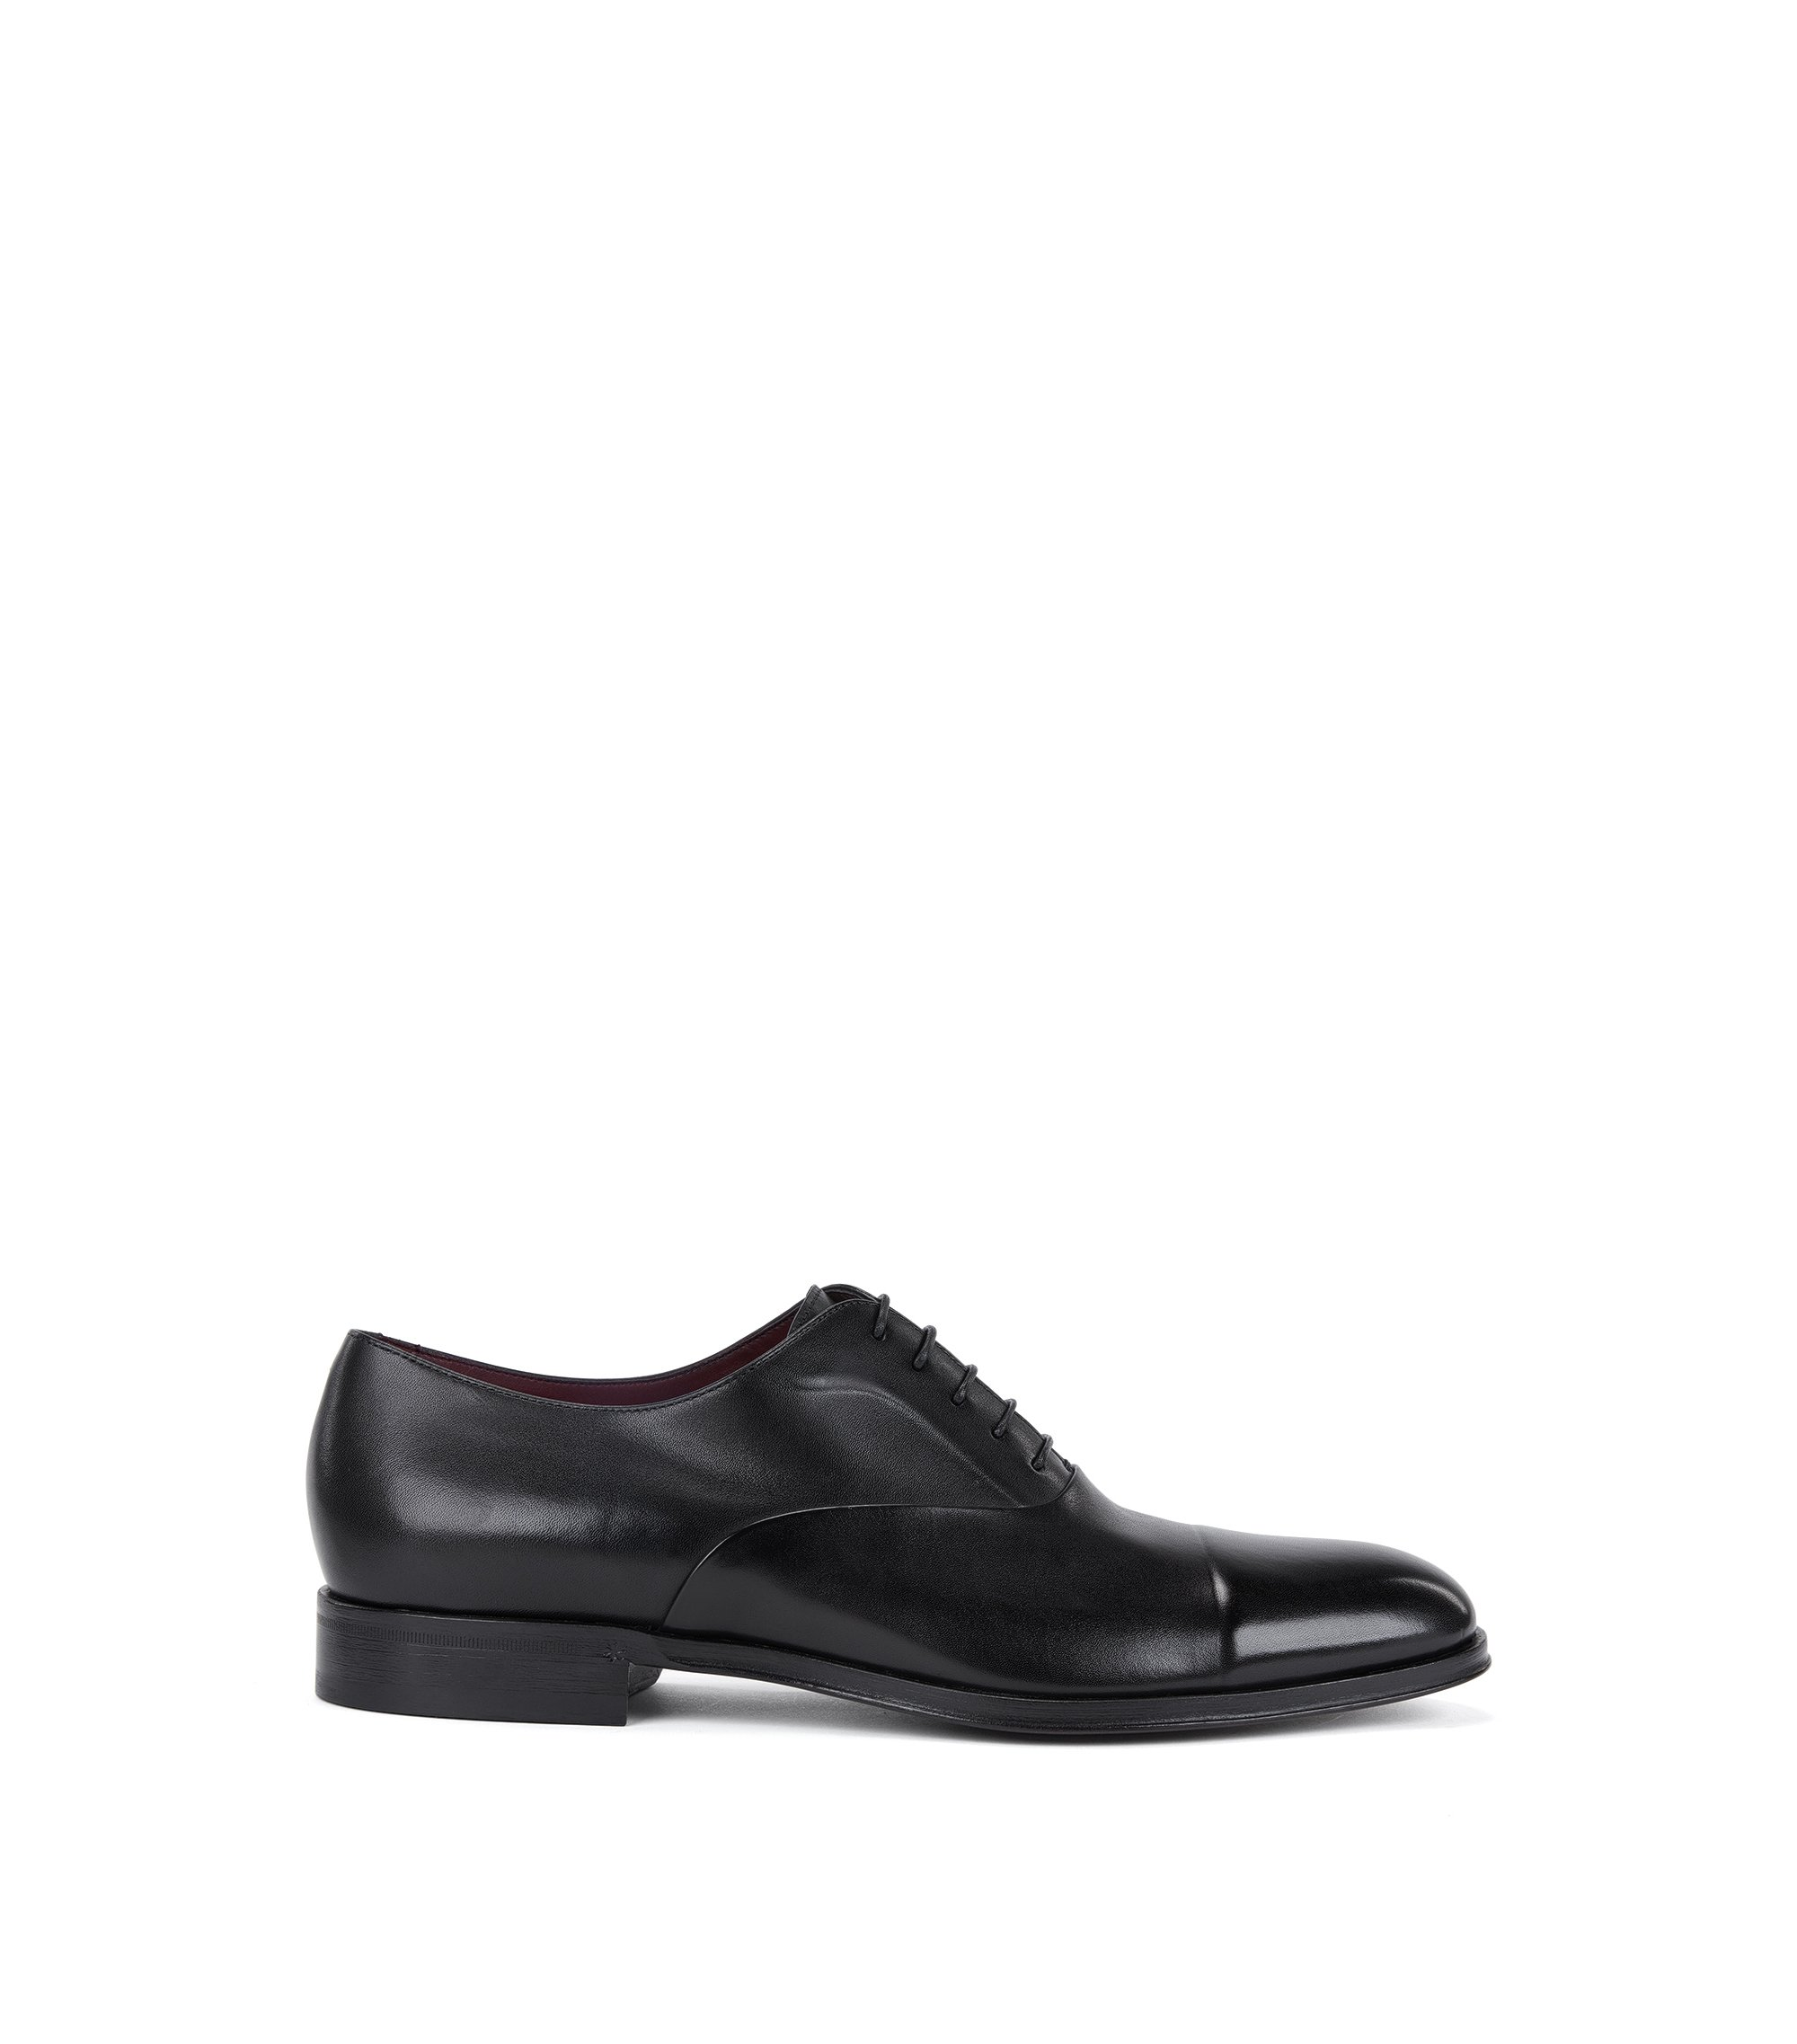 Scarpe Oxford in pelle di vitello brunita, Nero